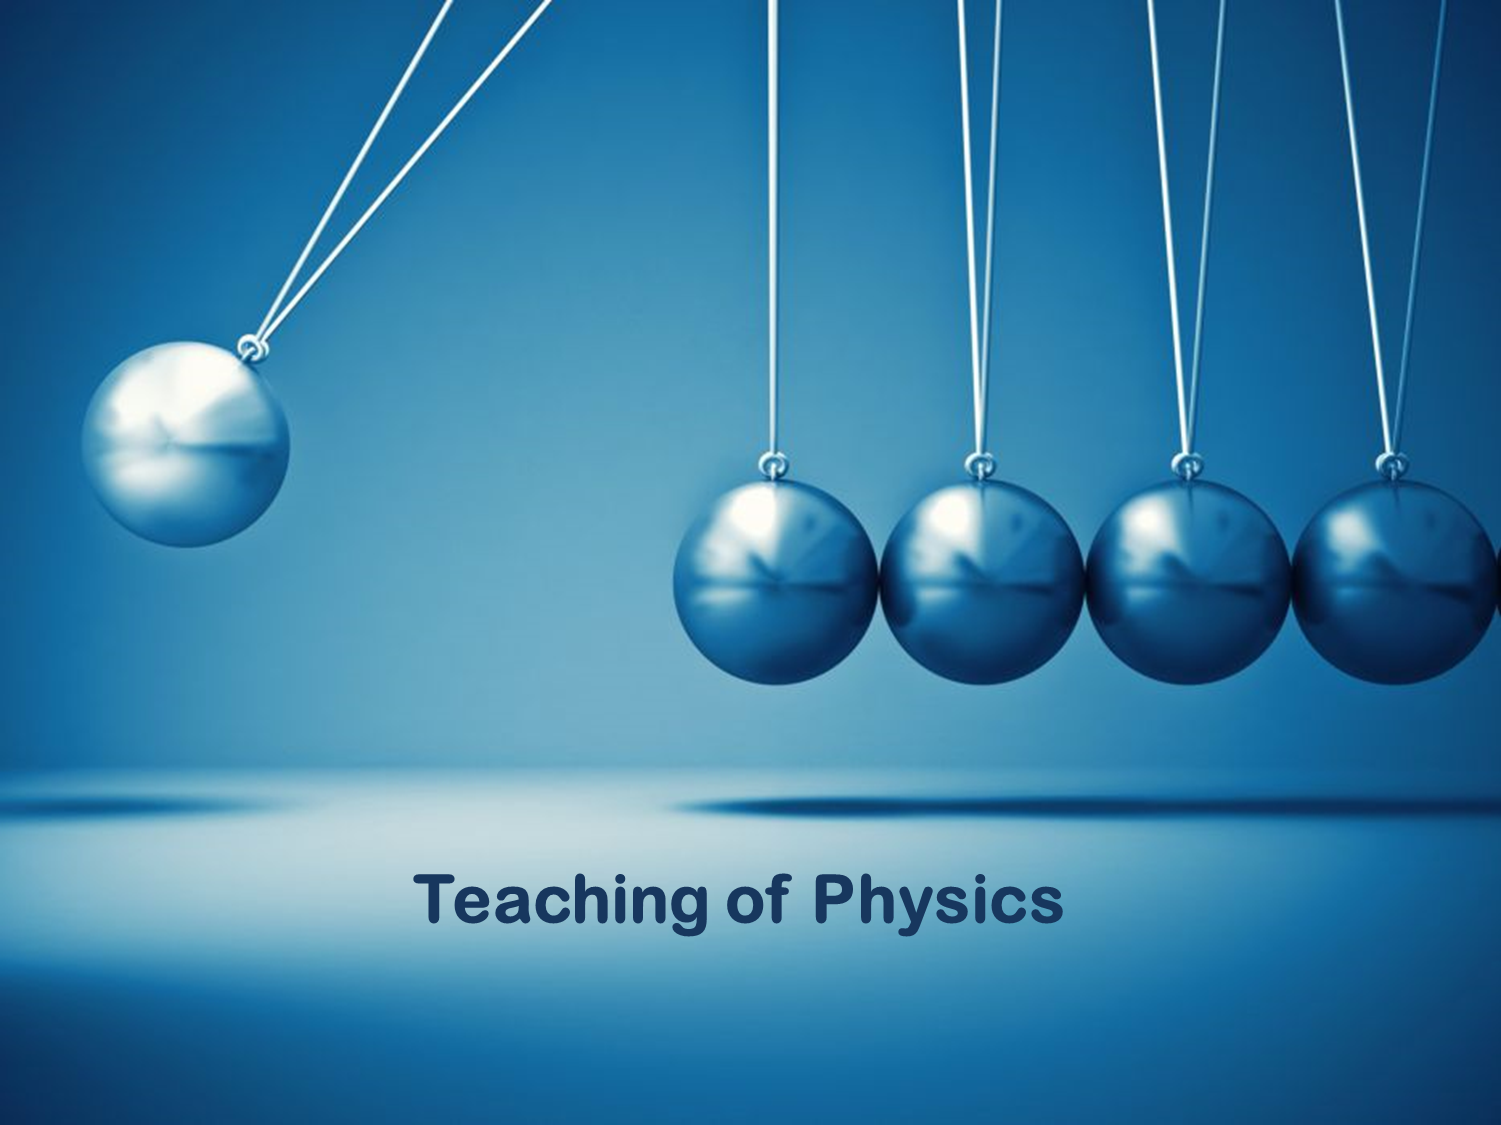 Teaching of Physics